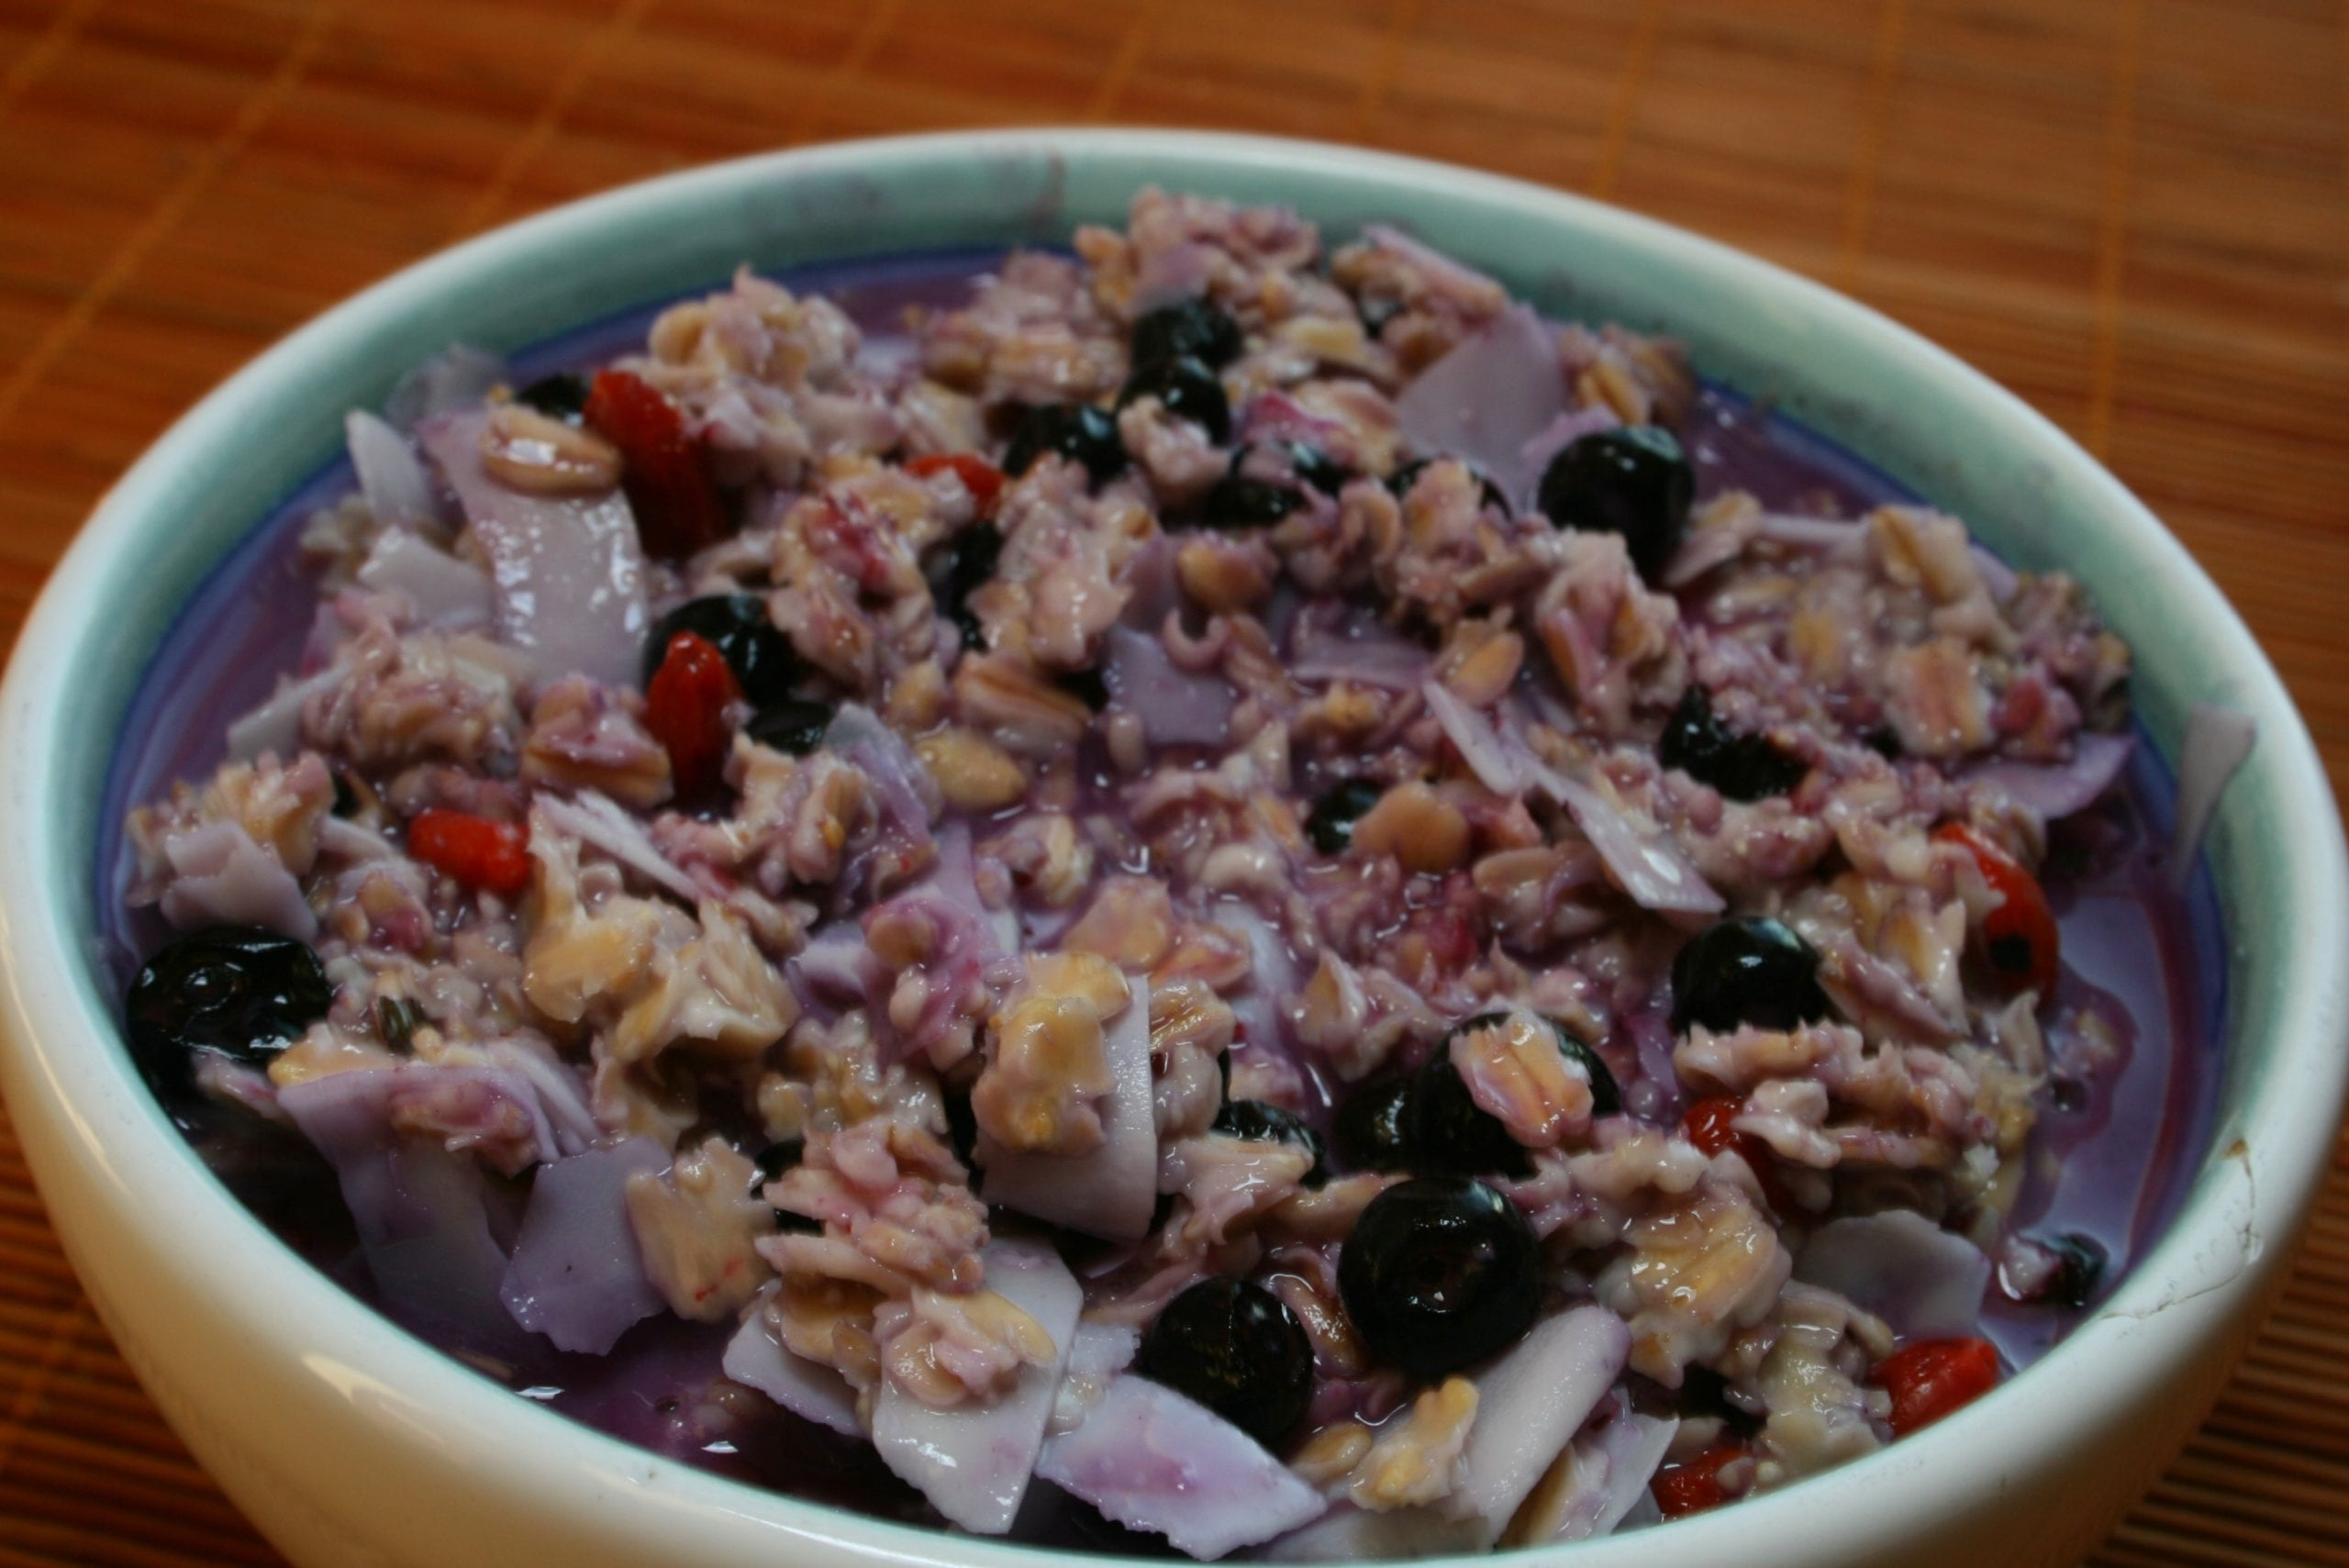 Oatmeal with goji berries blueberries and shredded coconut - Kaerapuder mustikatega 002